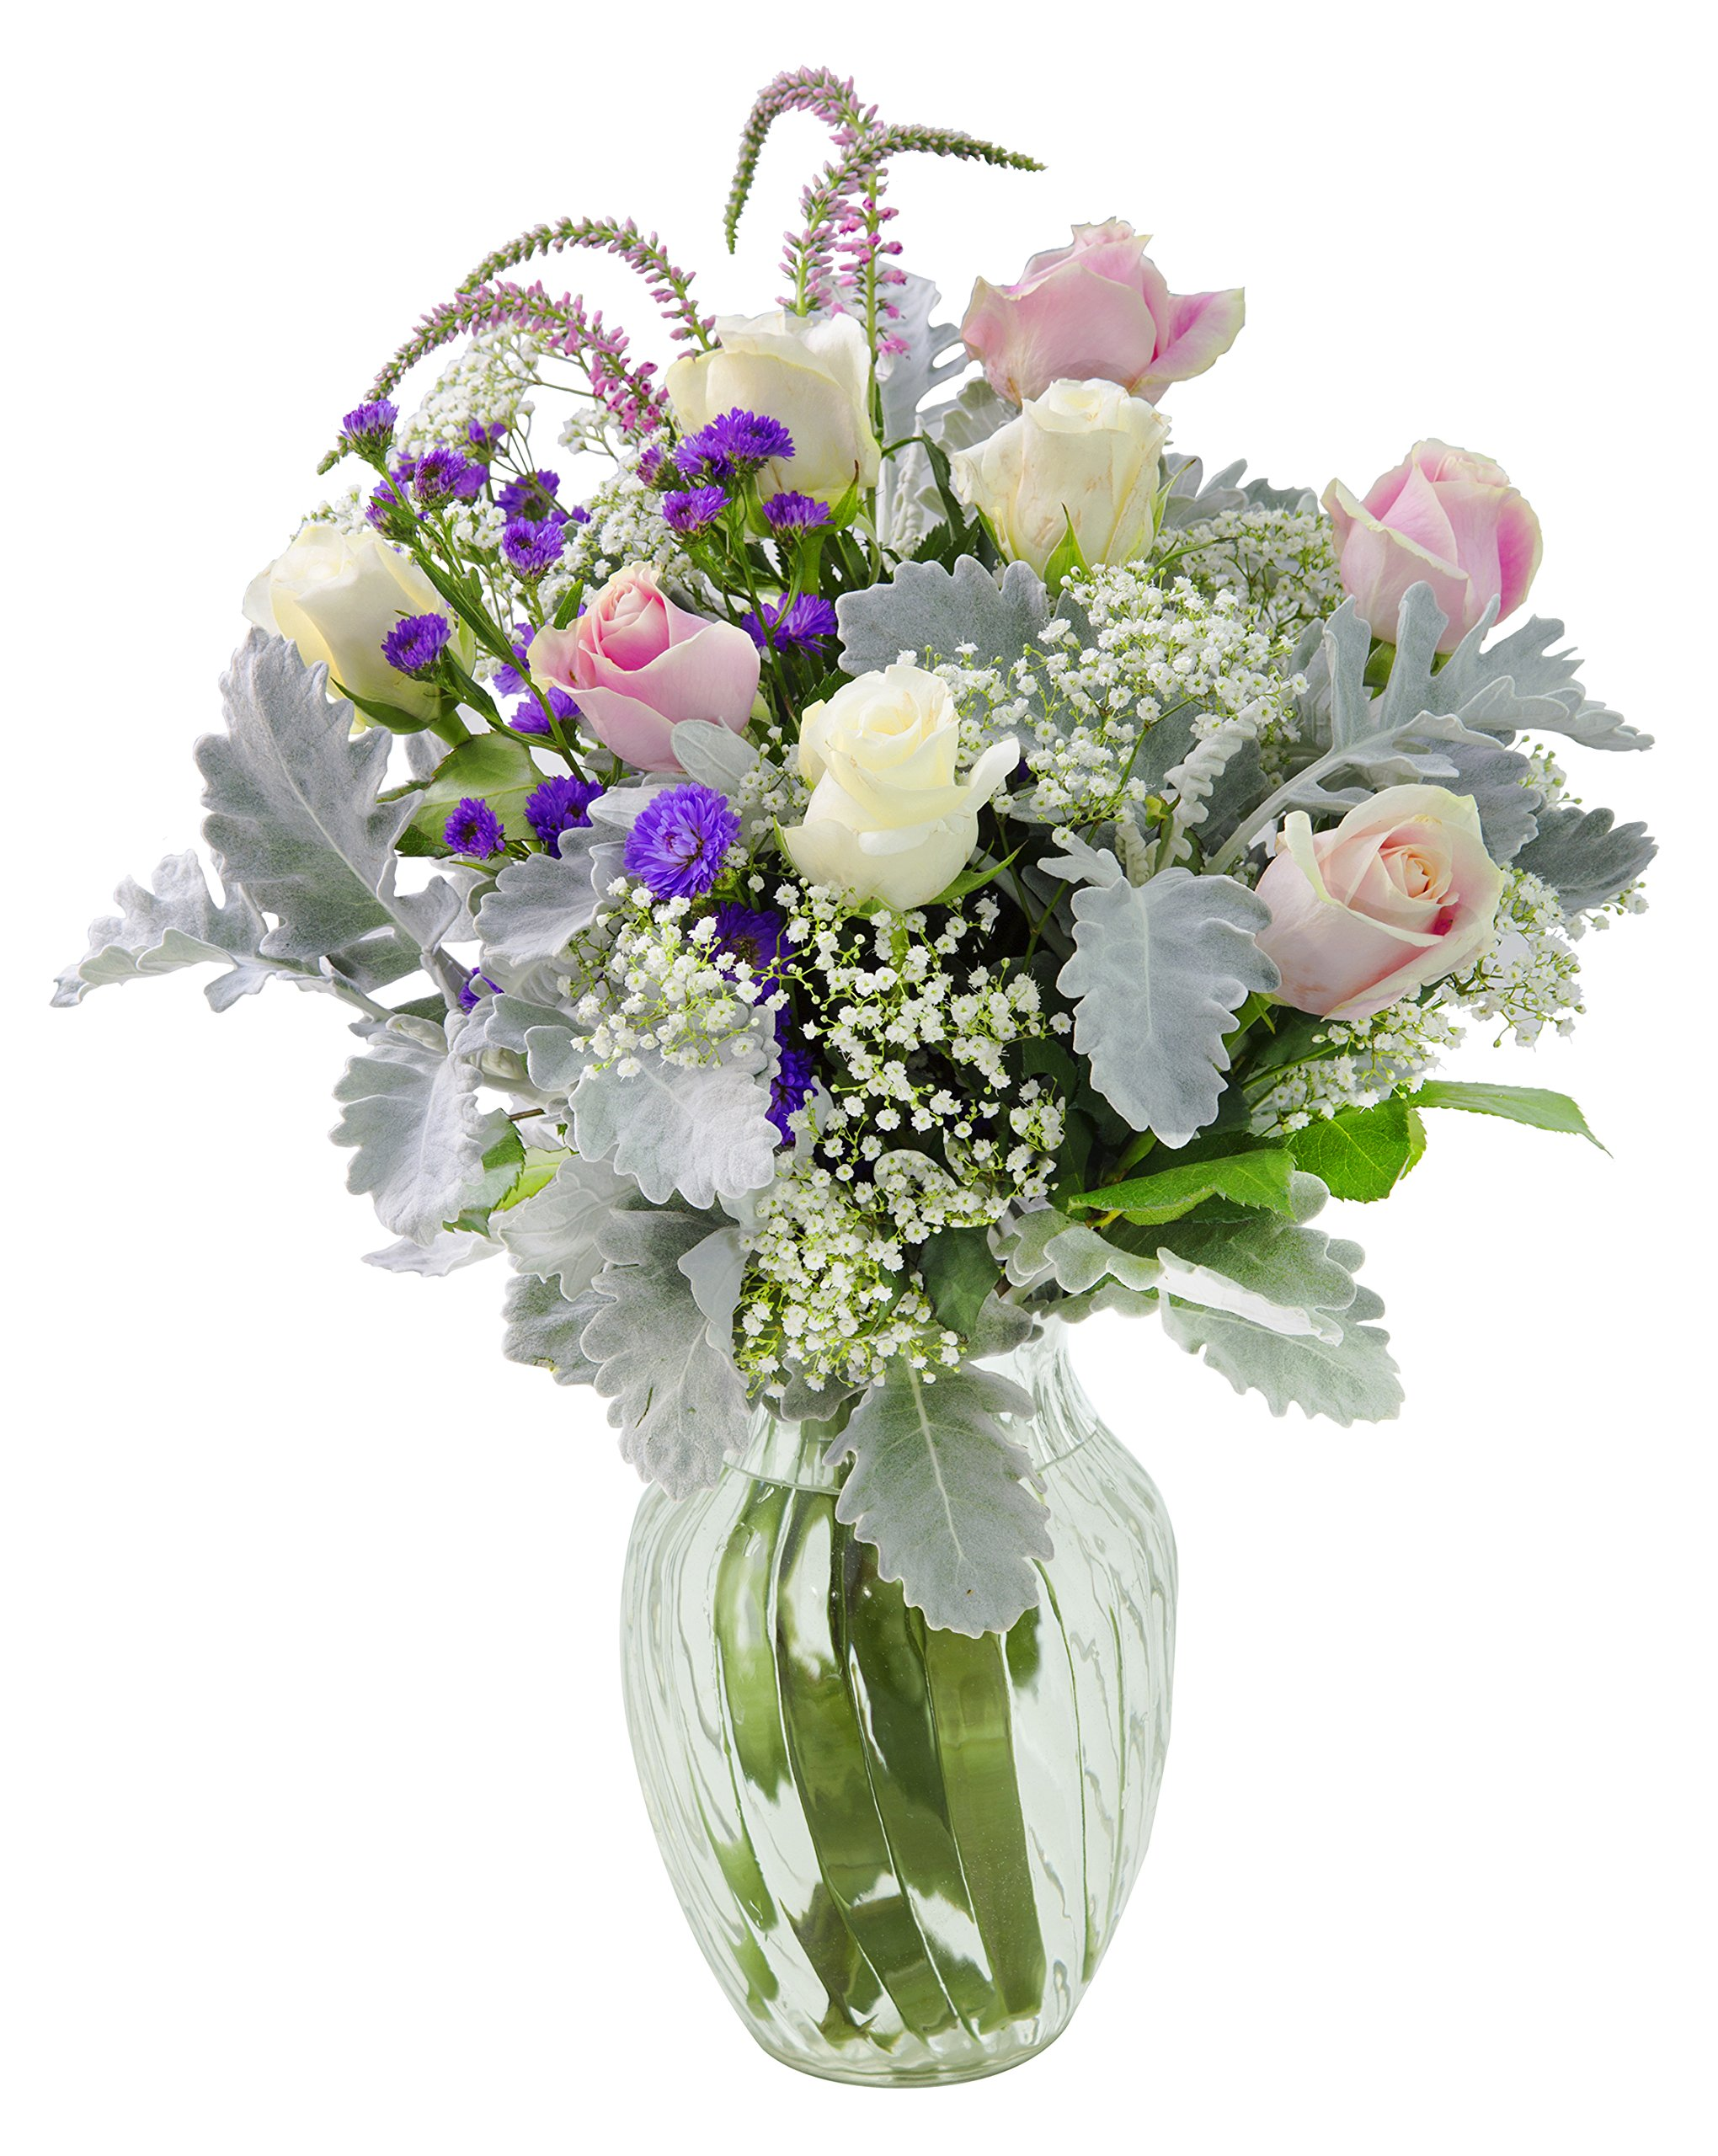 Deluxe Mixed Bouquet of Masterful Floral Beauty with Free Vase Included